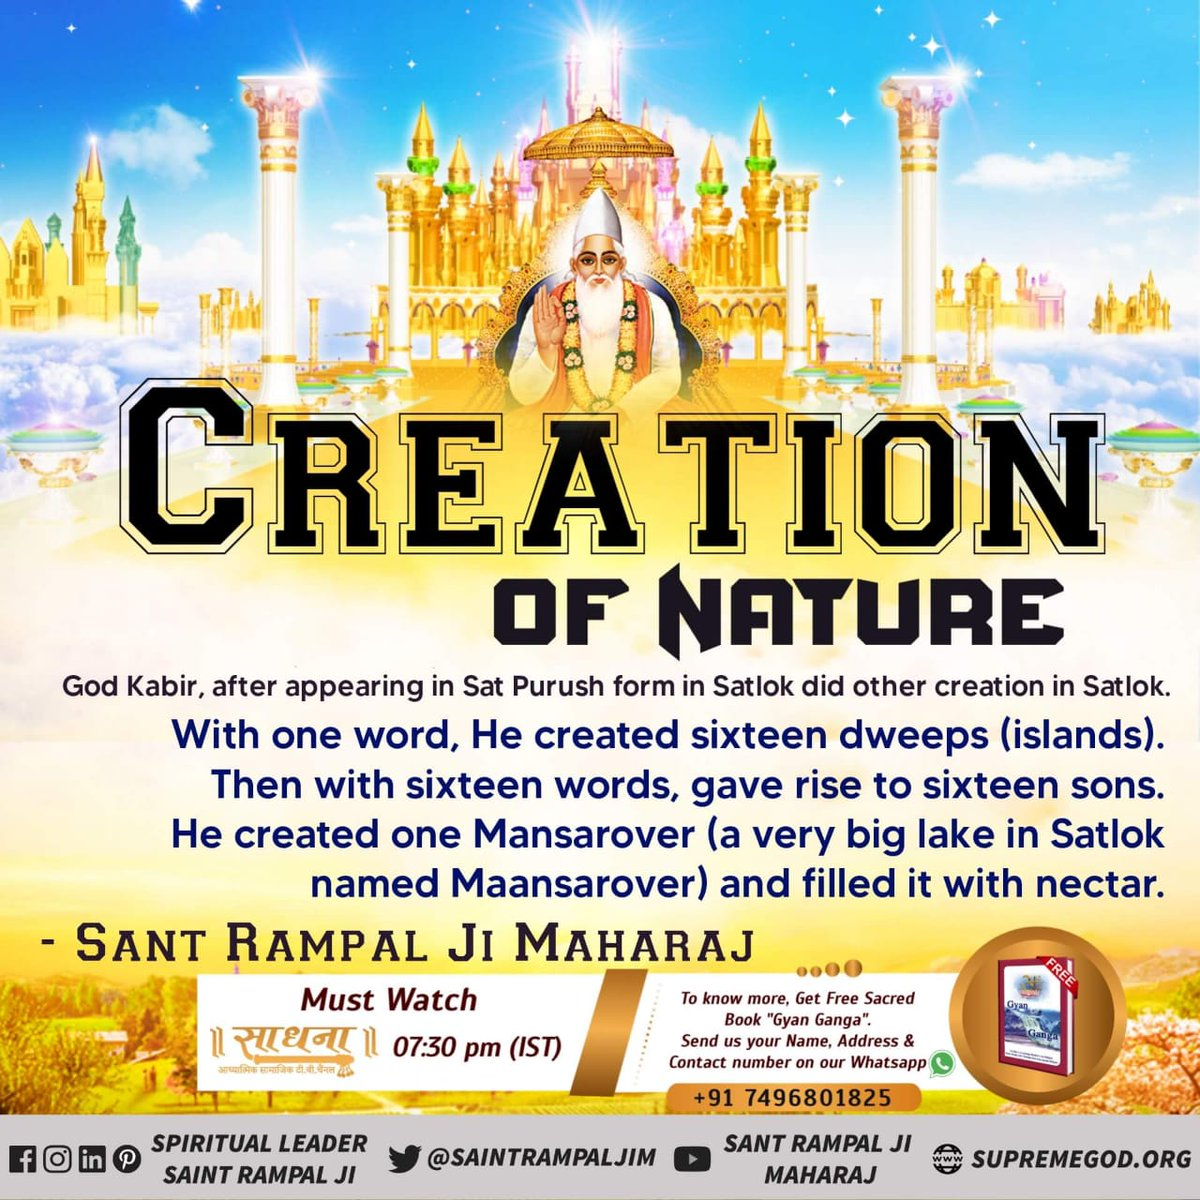 #ThursdayThoughts Creation of Nature. God Kabir,after appearing in sat puresh from in Satlok did other creation in Satlok. Must watch at sadhna tv 7:30 pm